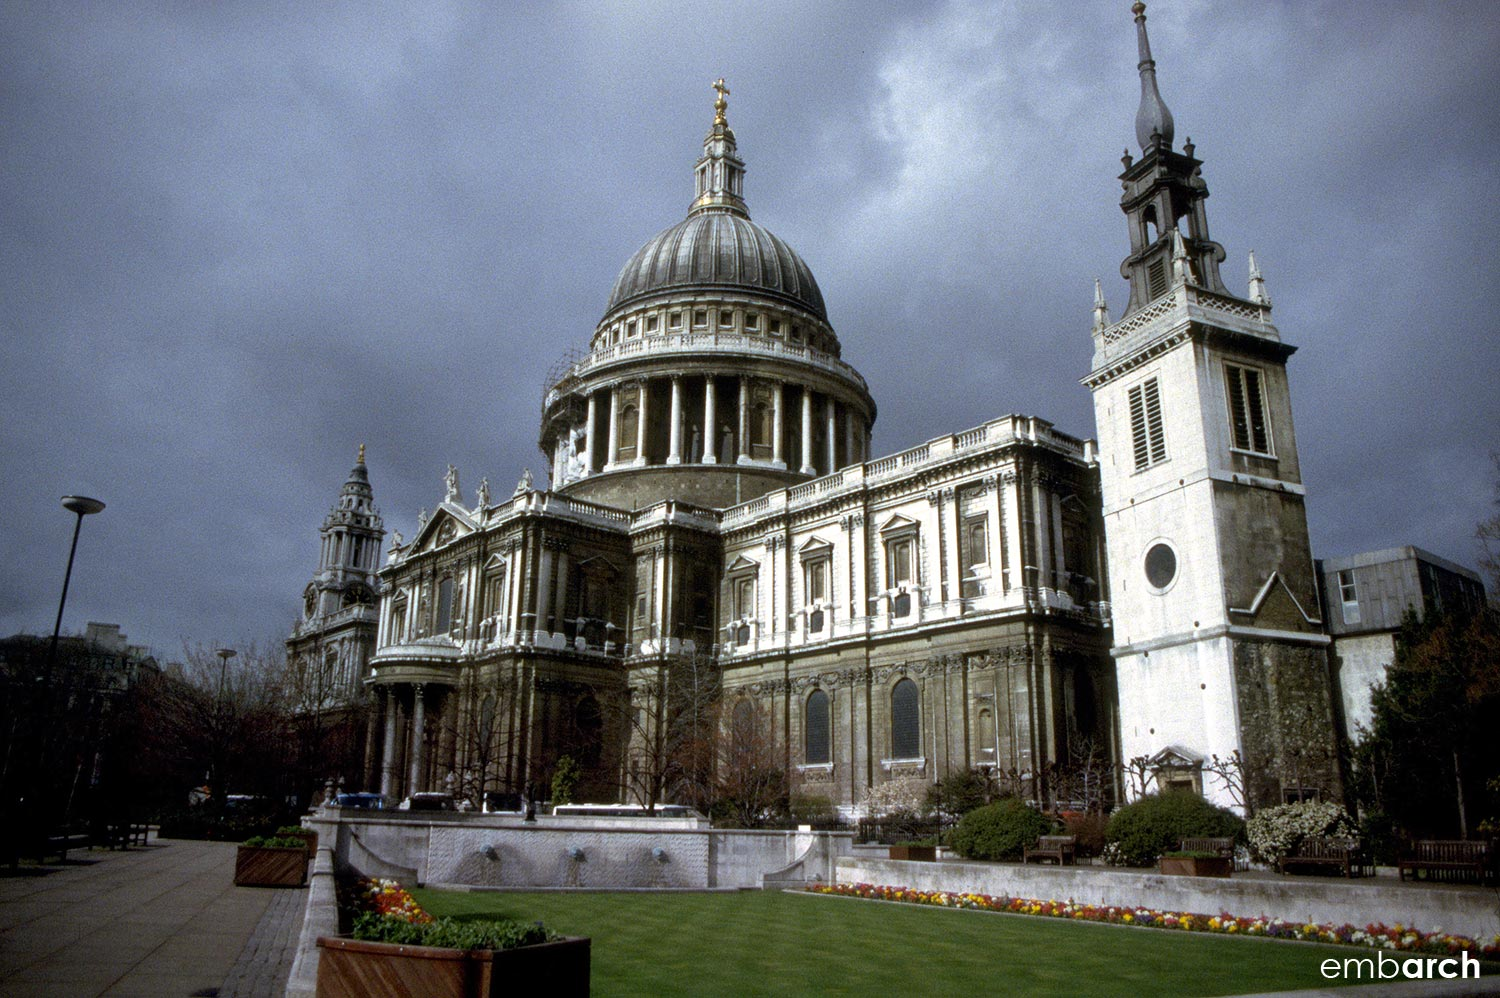 St. Paul's Cathedral - exterior south elevation